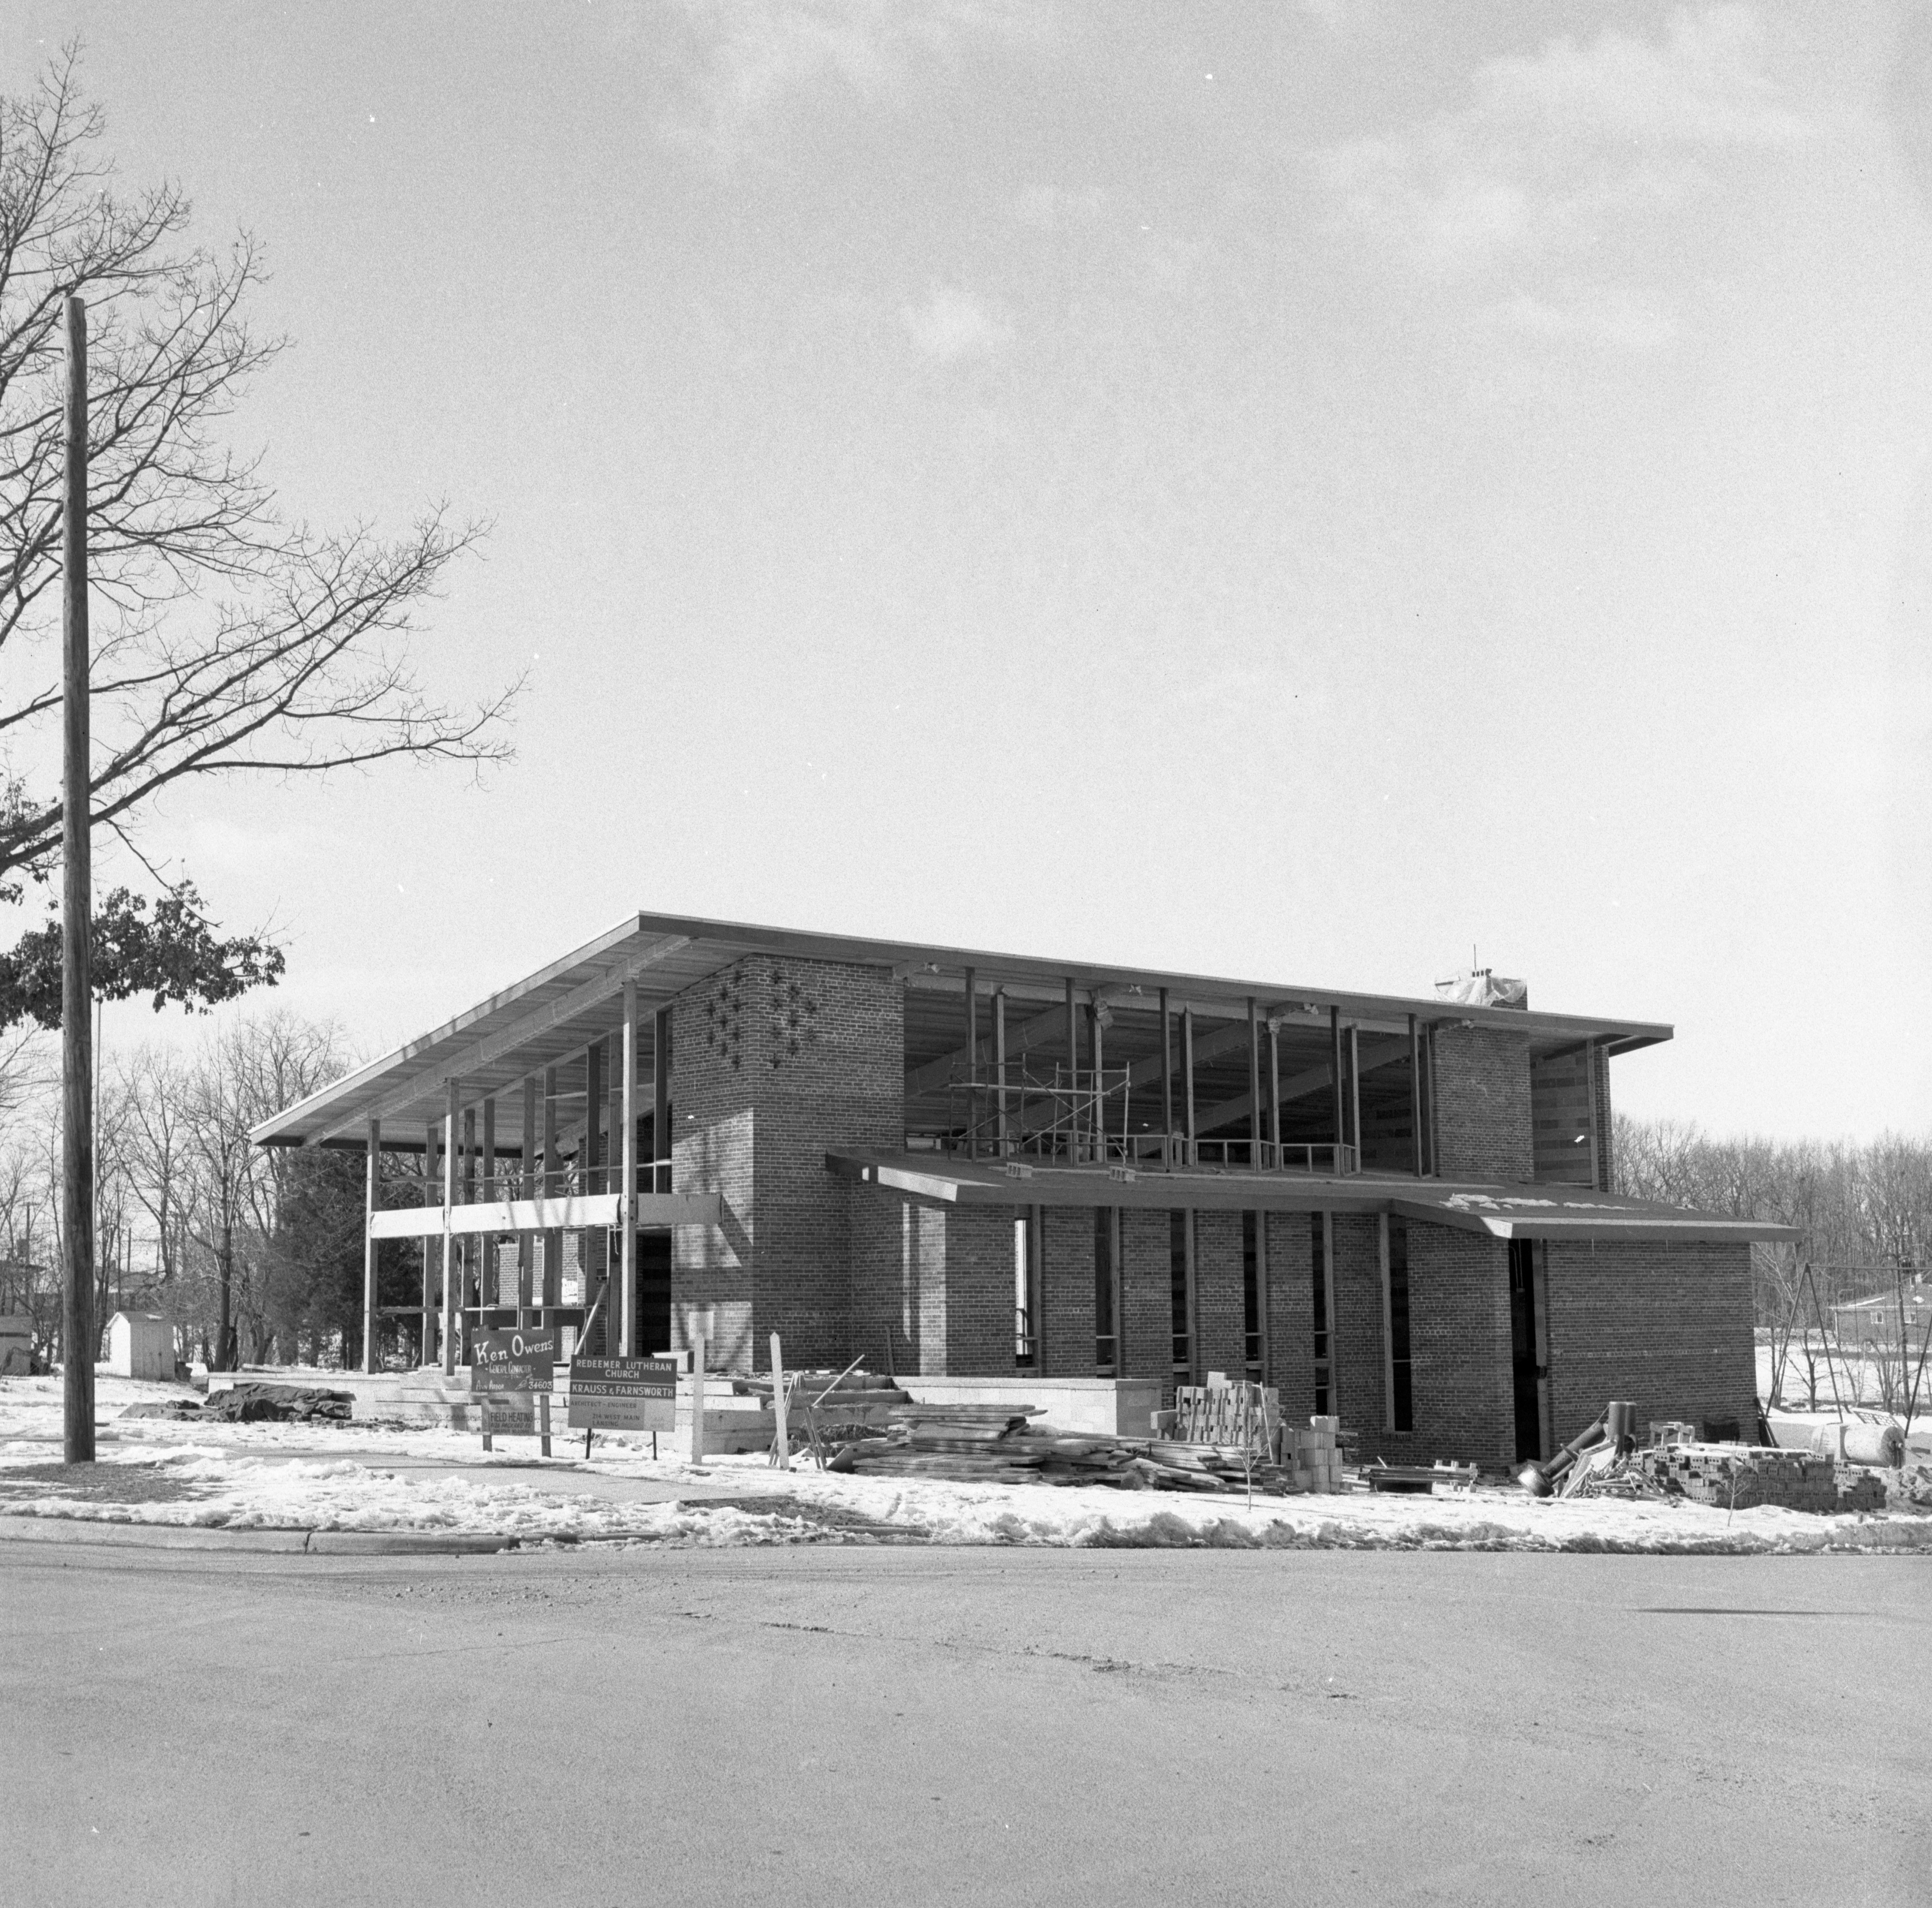 New Redeemer Lutheran Church Building Under Construction, February 1957 image